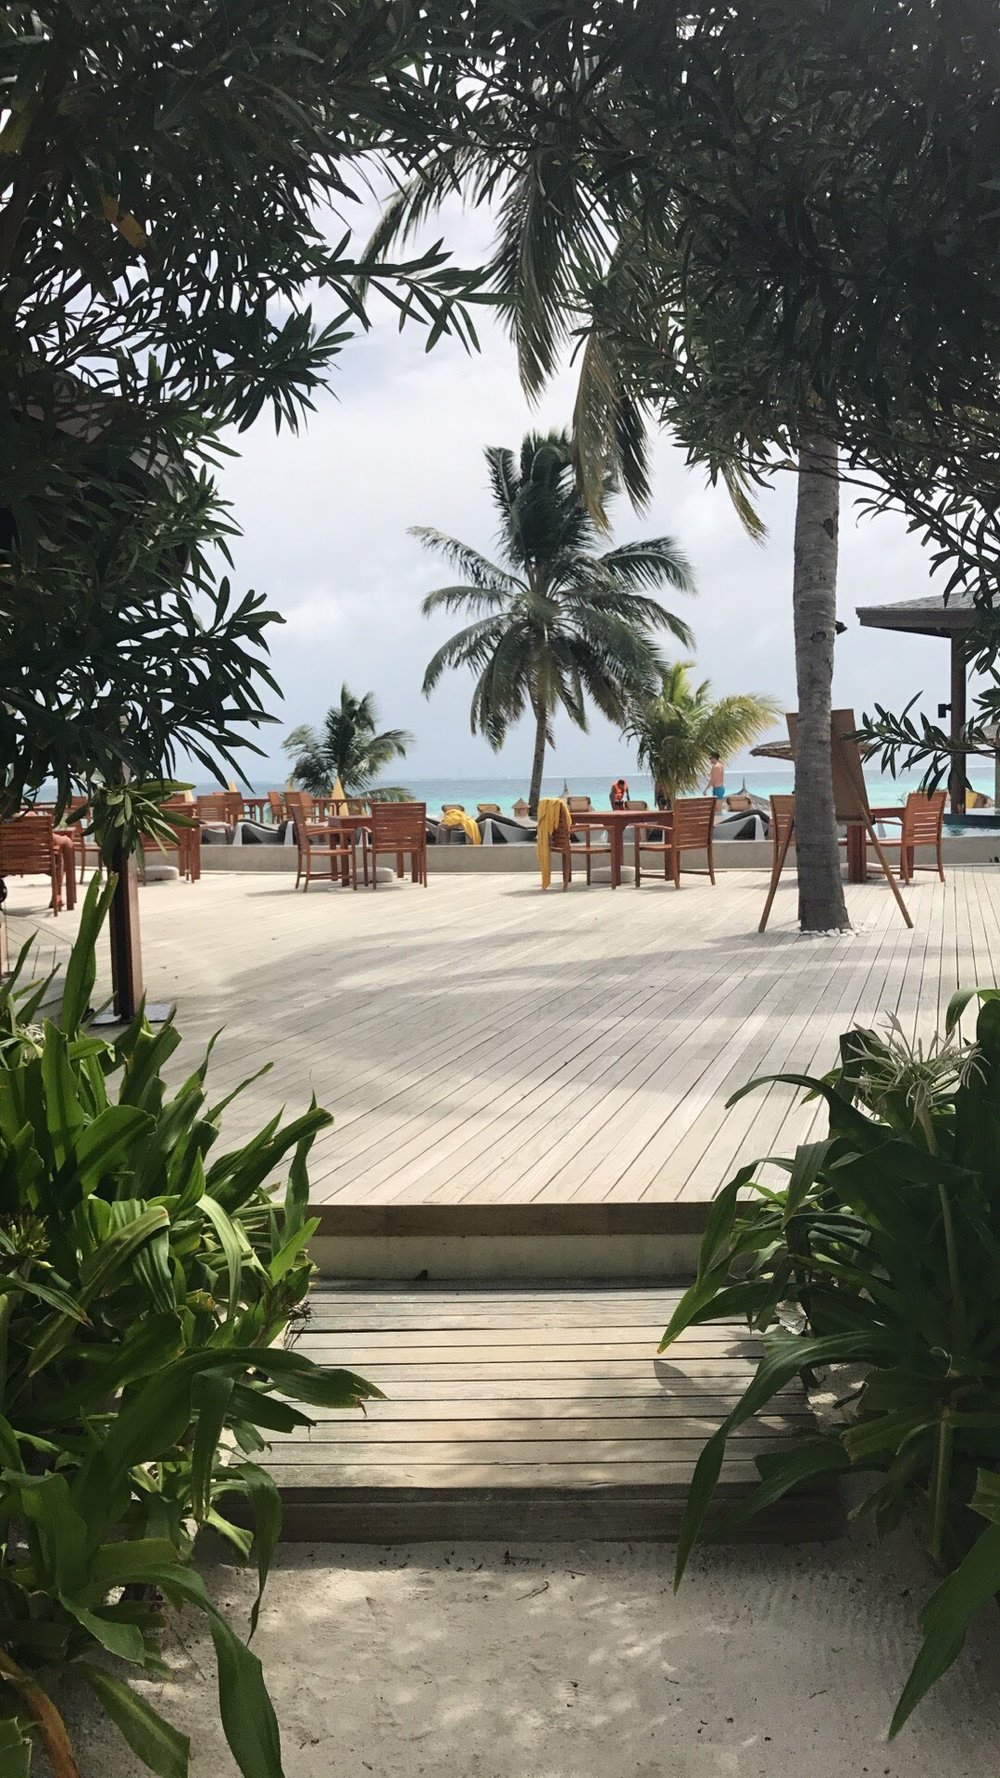 invite-to-paradise-maldives-sri-lanka-specialists-experts-travel-agent-tour-operator-customer-feedback-lucas-emily-fenning-elephant-orphanage-centara-ras-fushi-pool-area.jpg